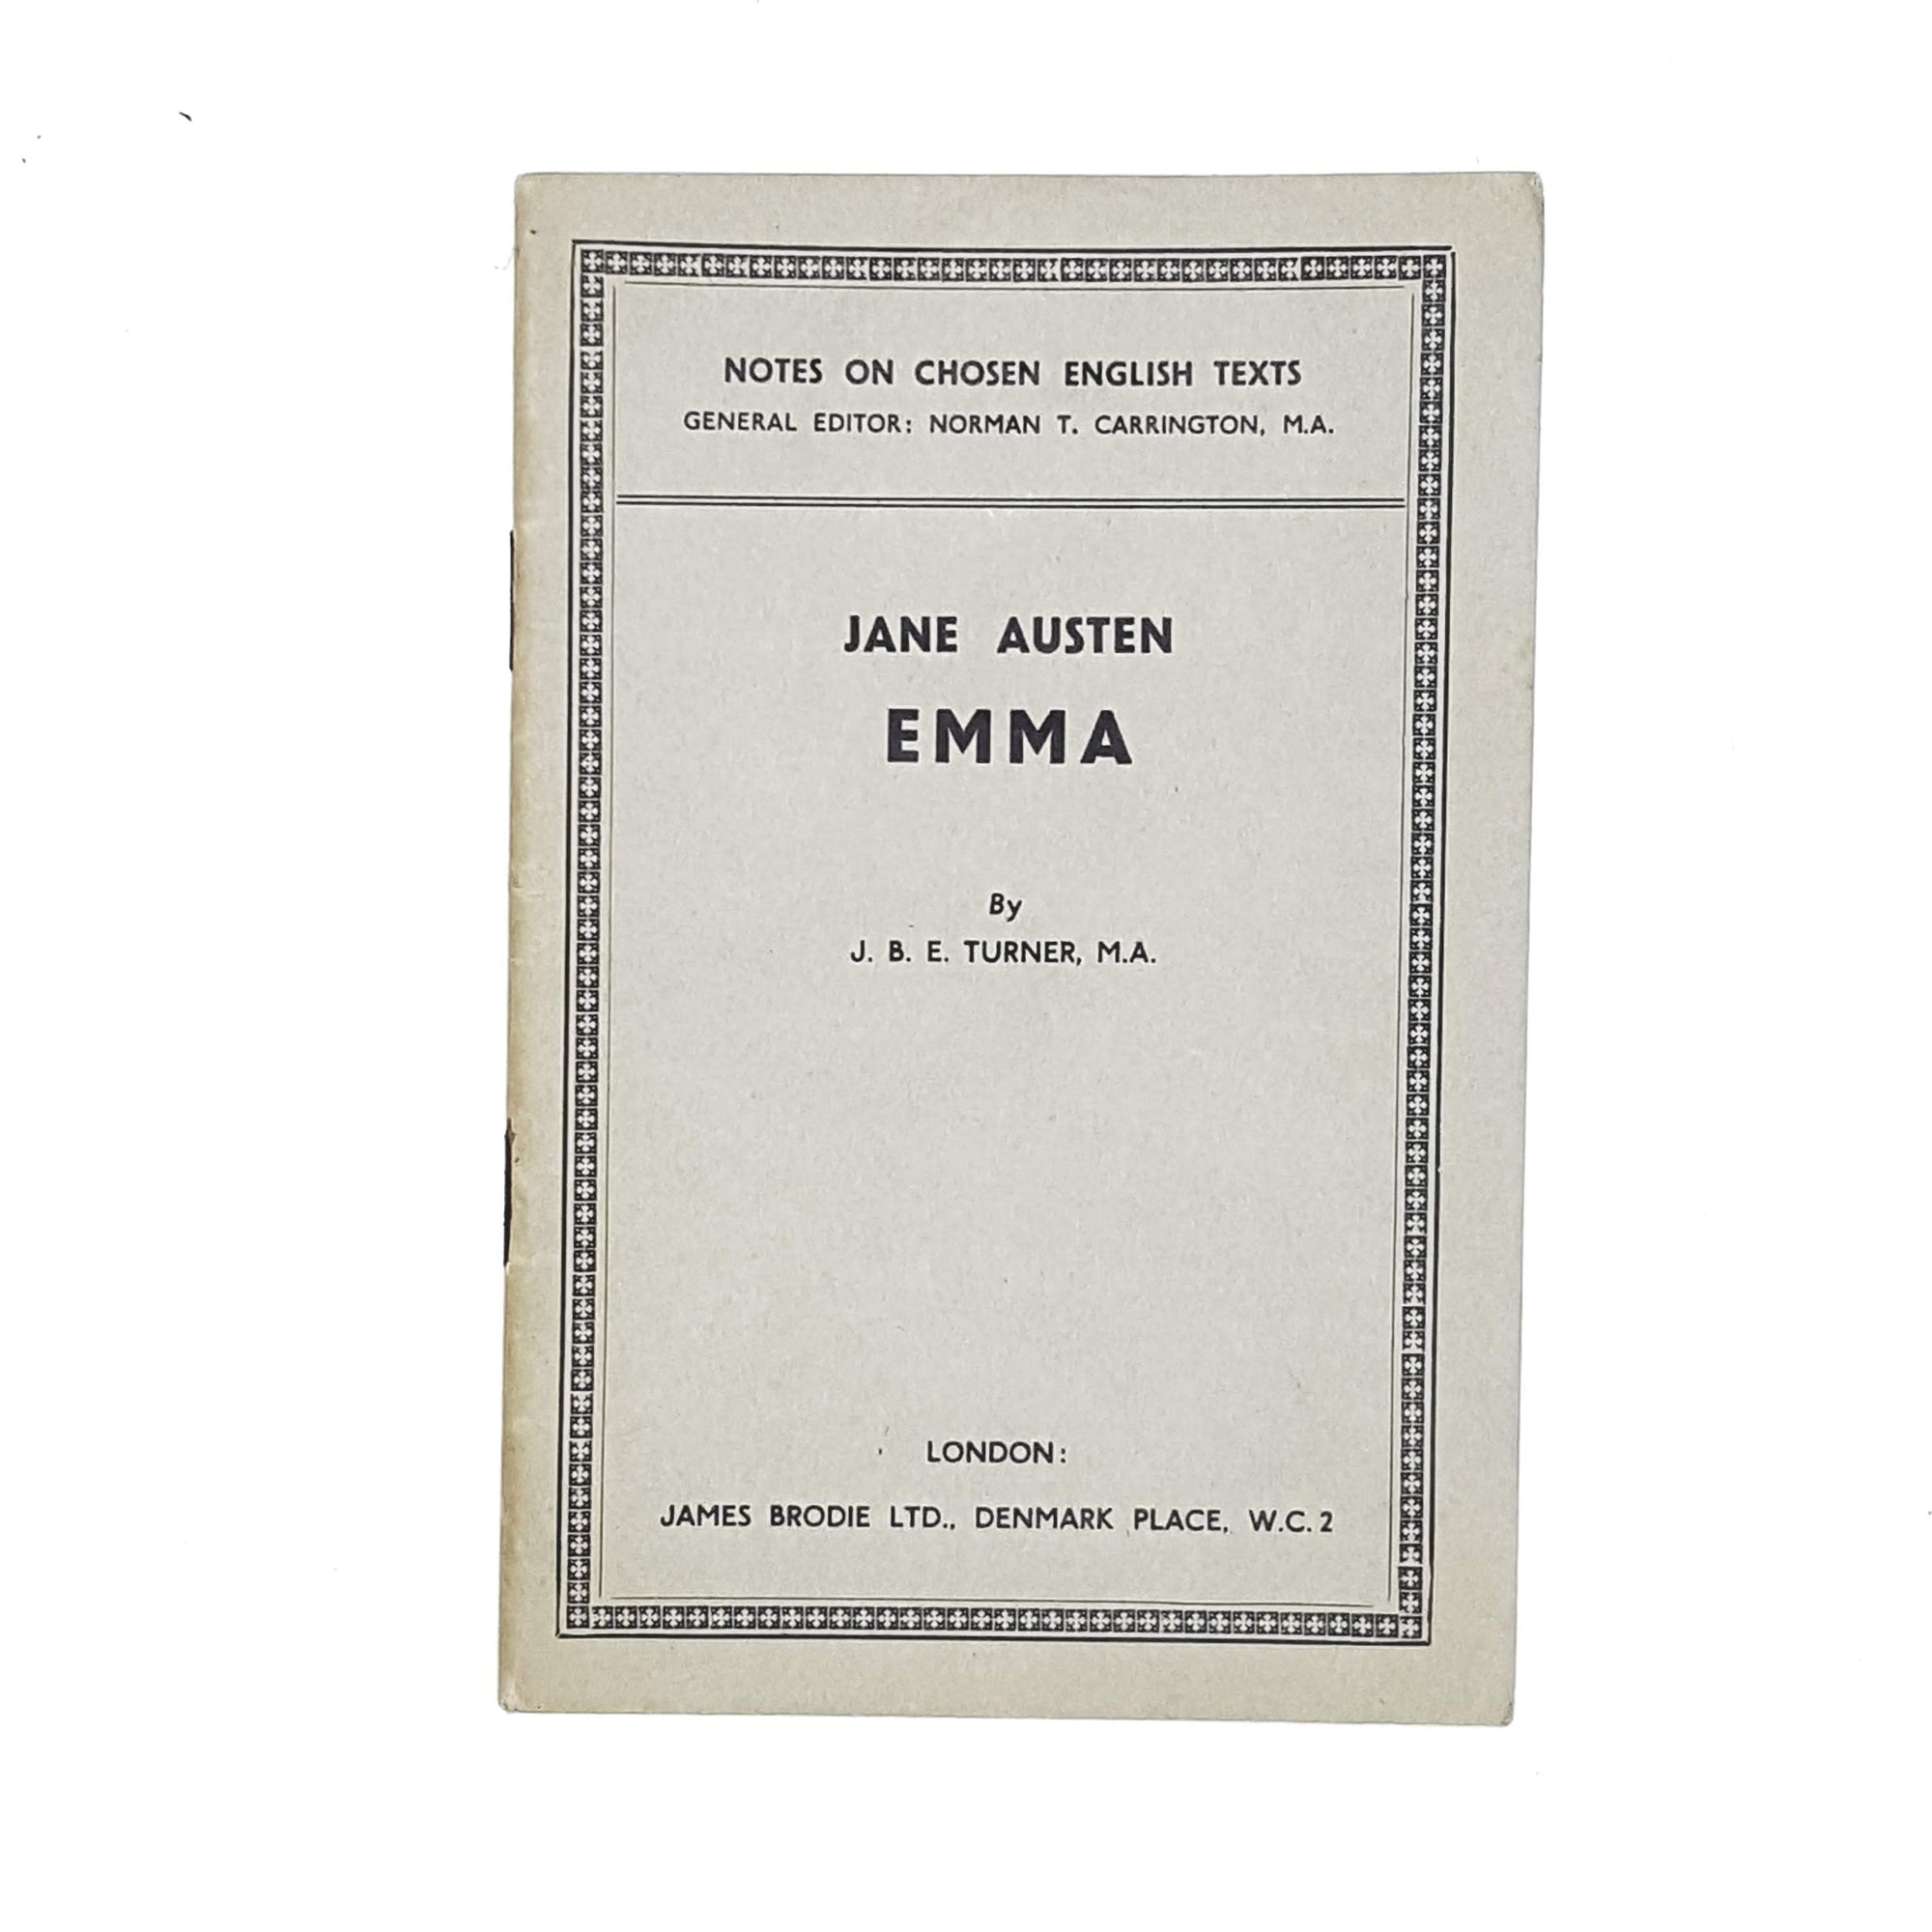 Notes on Jane Austen's Emma by J. B. Turner